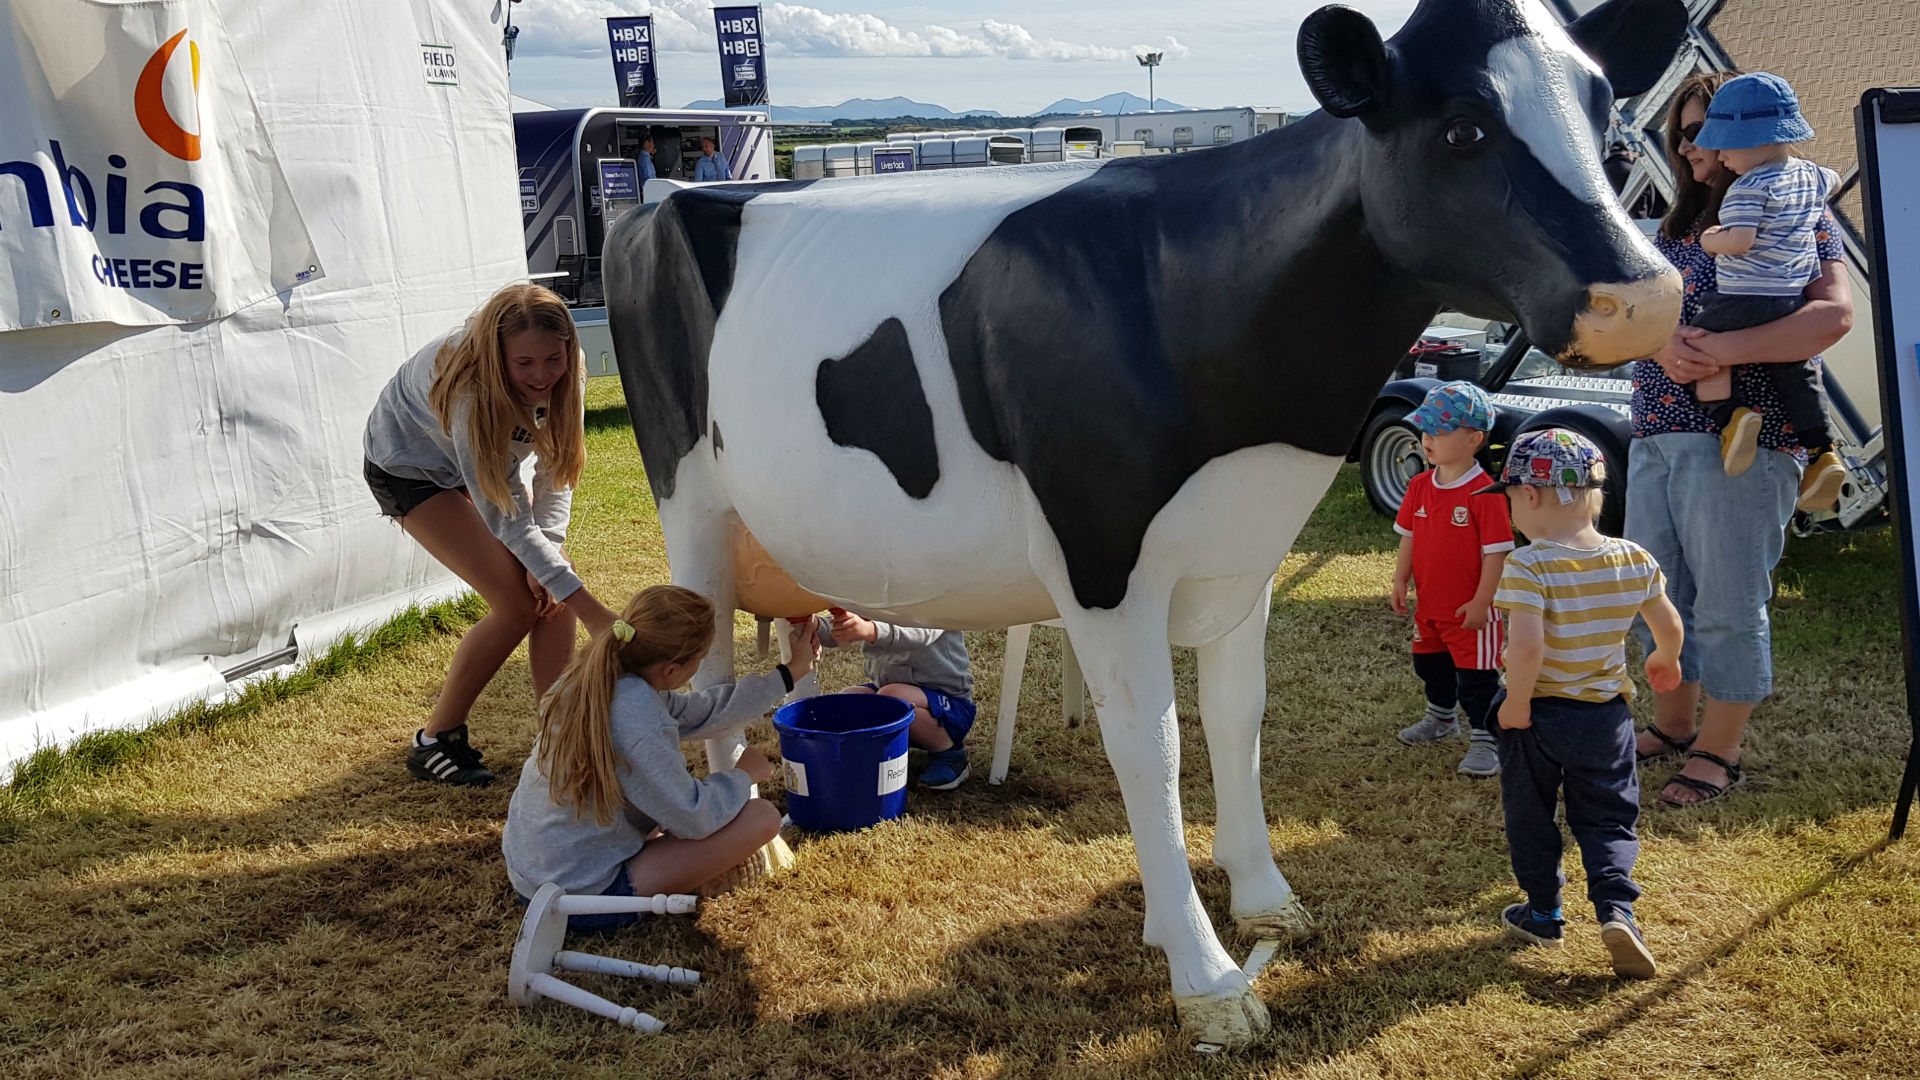 2019 Merioneth County Show, Harlech – We will be there